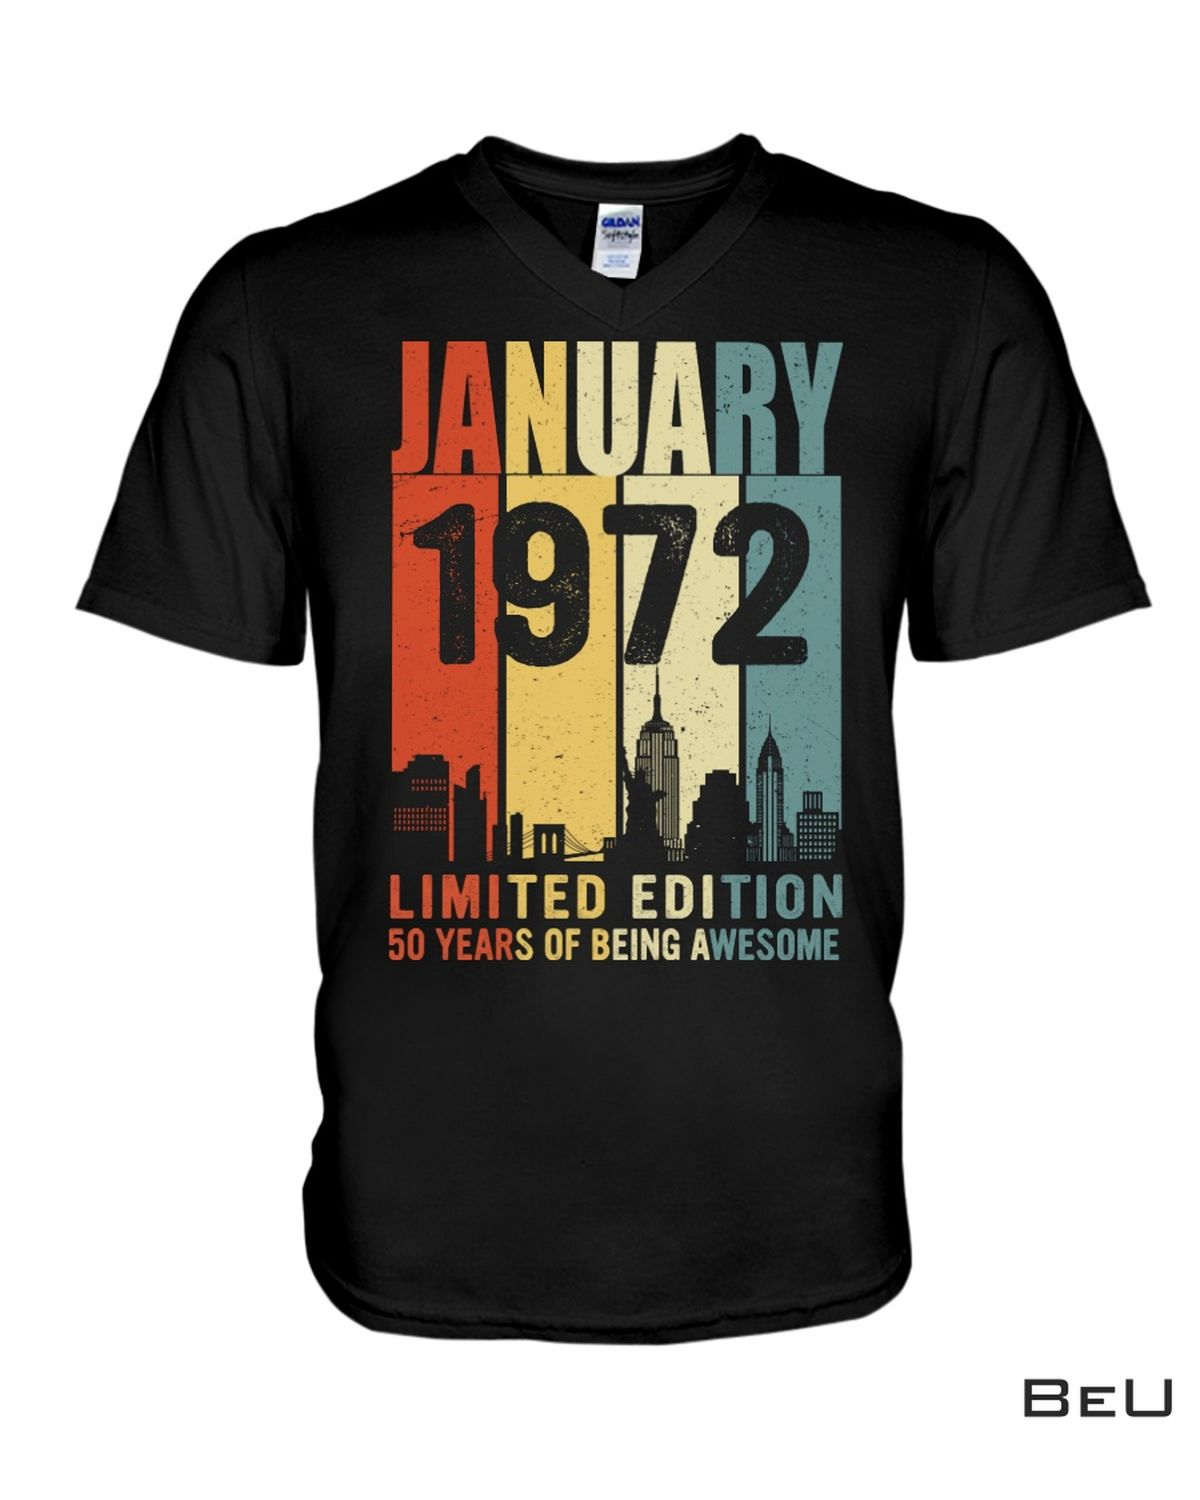 January 1972 Limited Edition 50 Years Of Being Awesome Shirtx